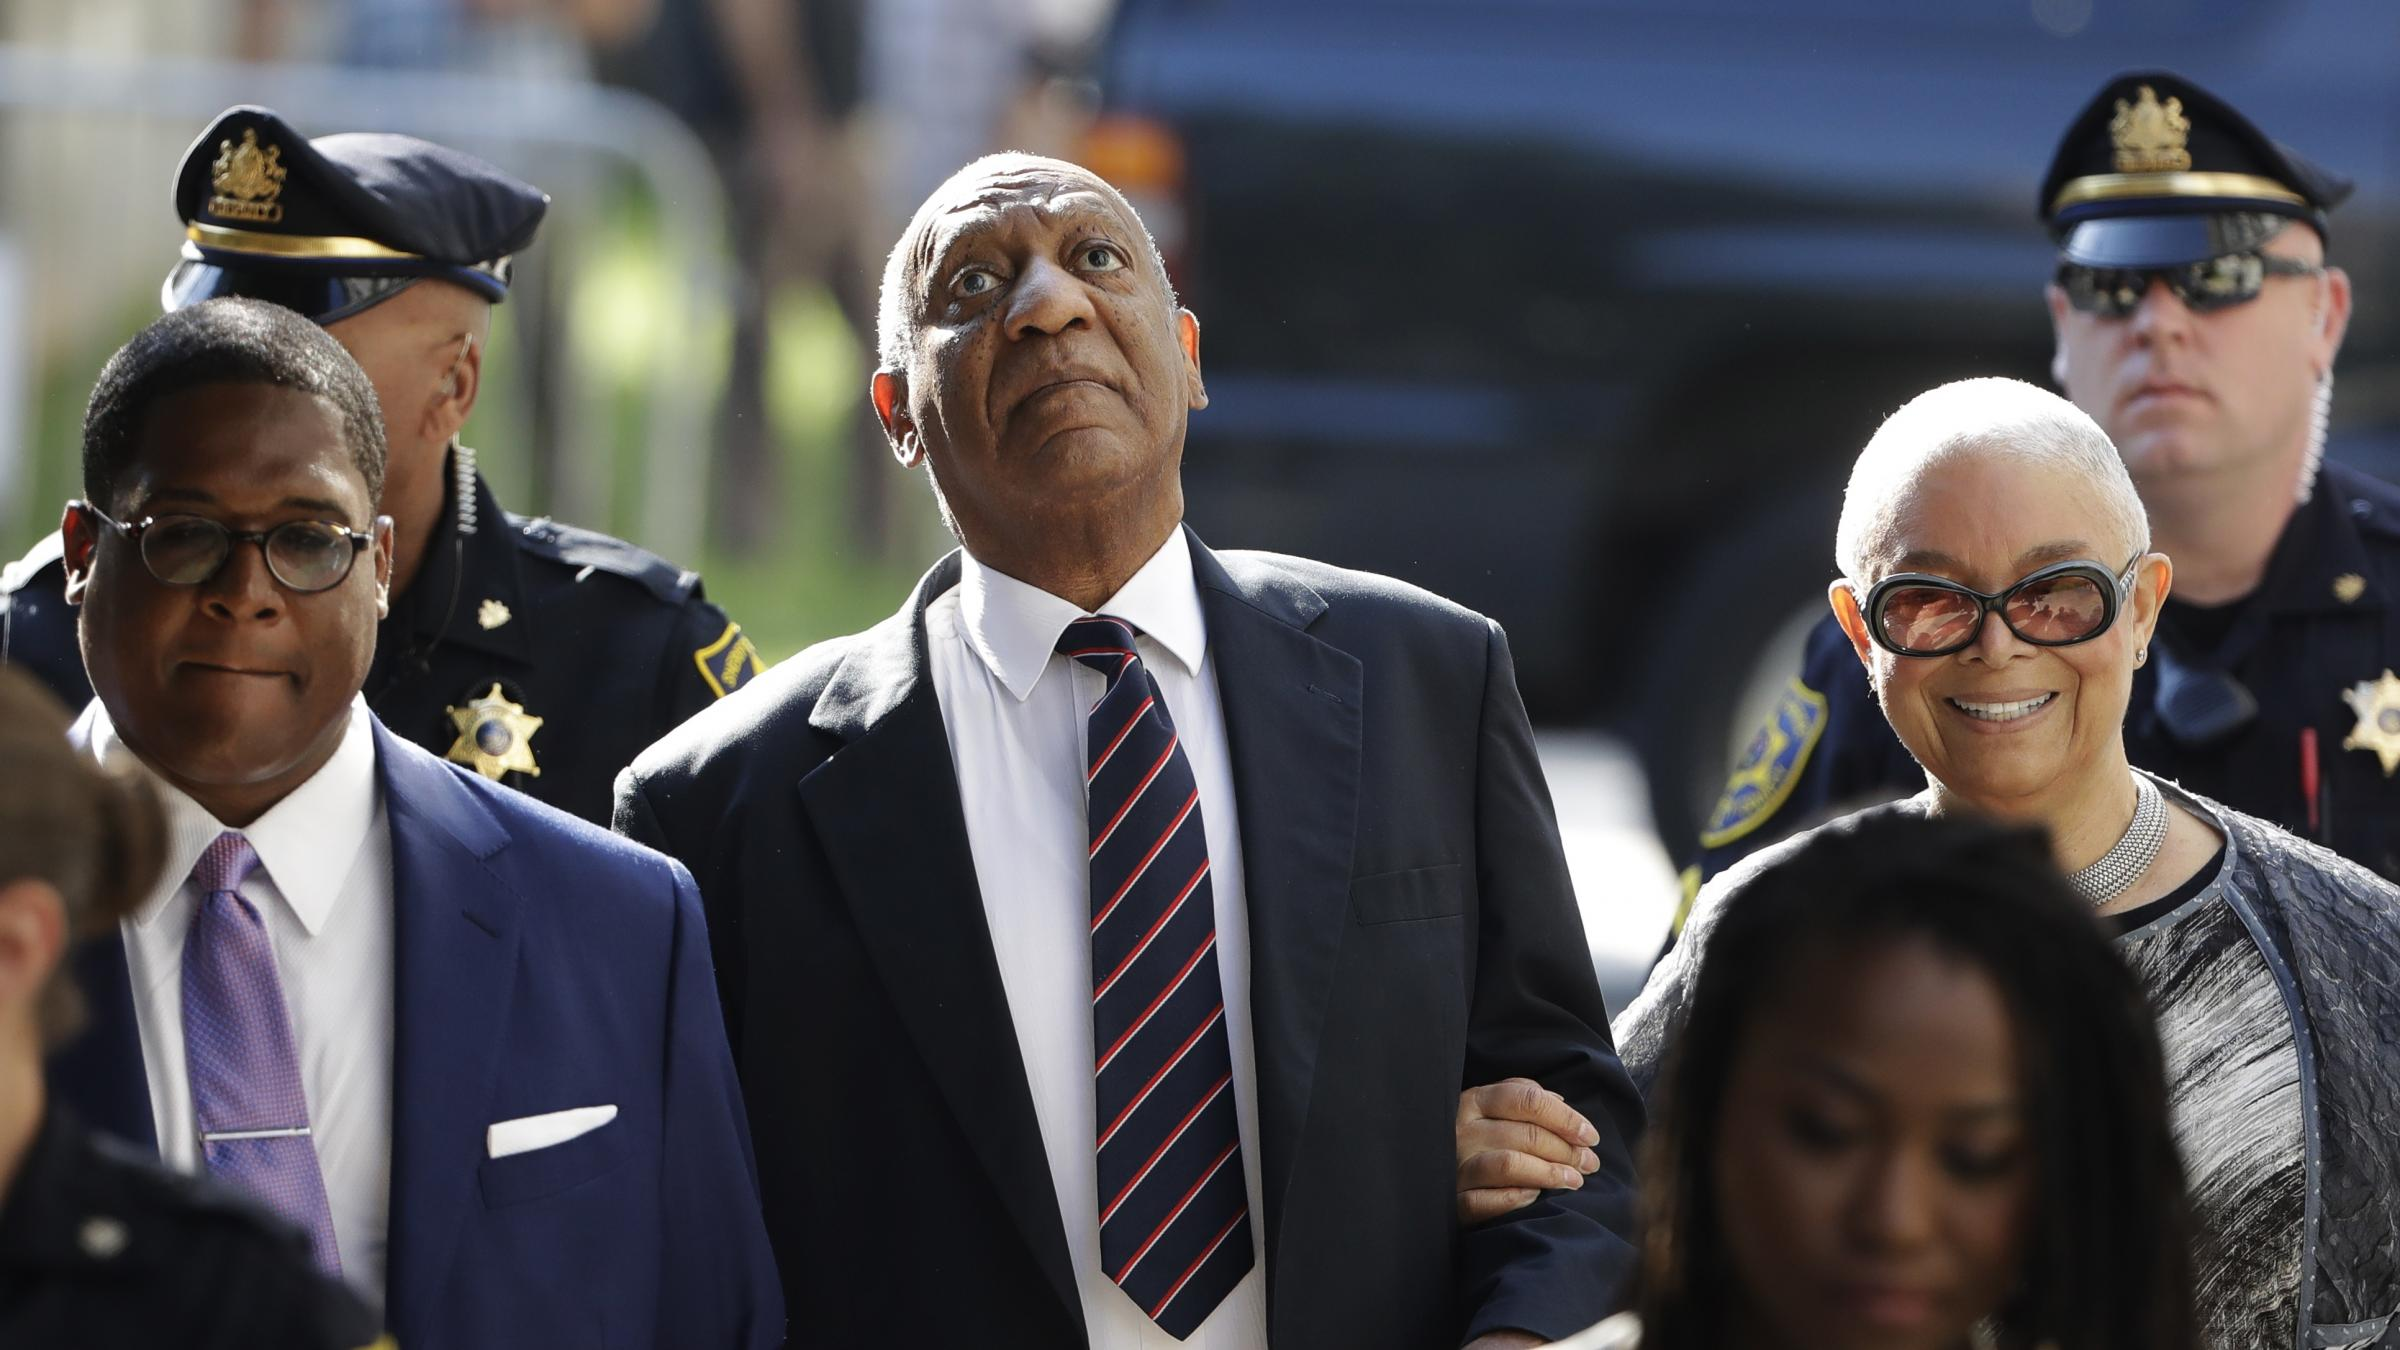 Cosby jury sent home after deliberating 4 hours